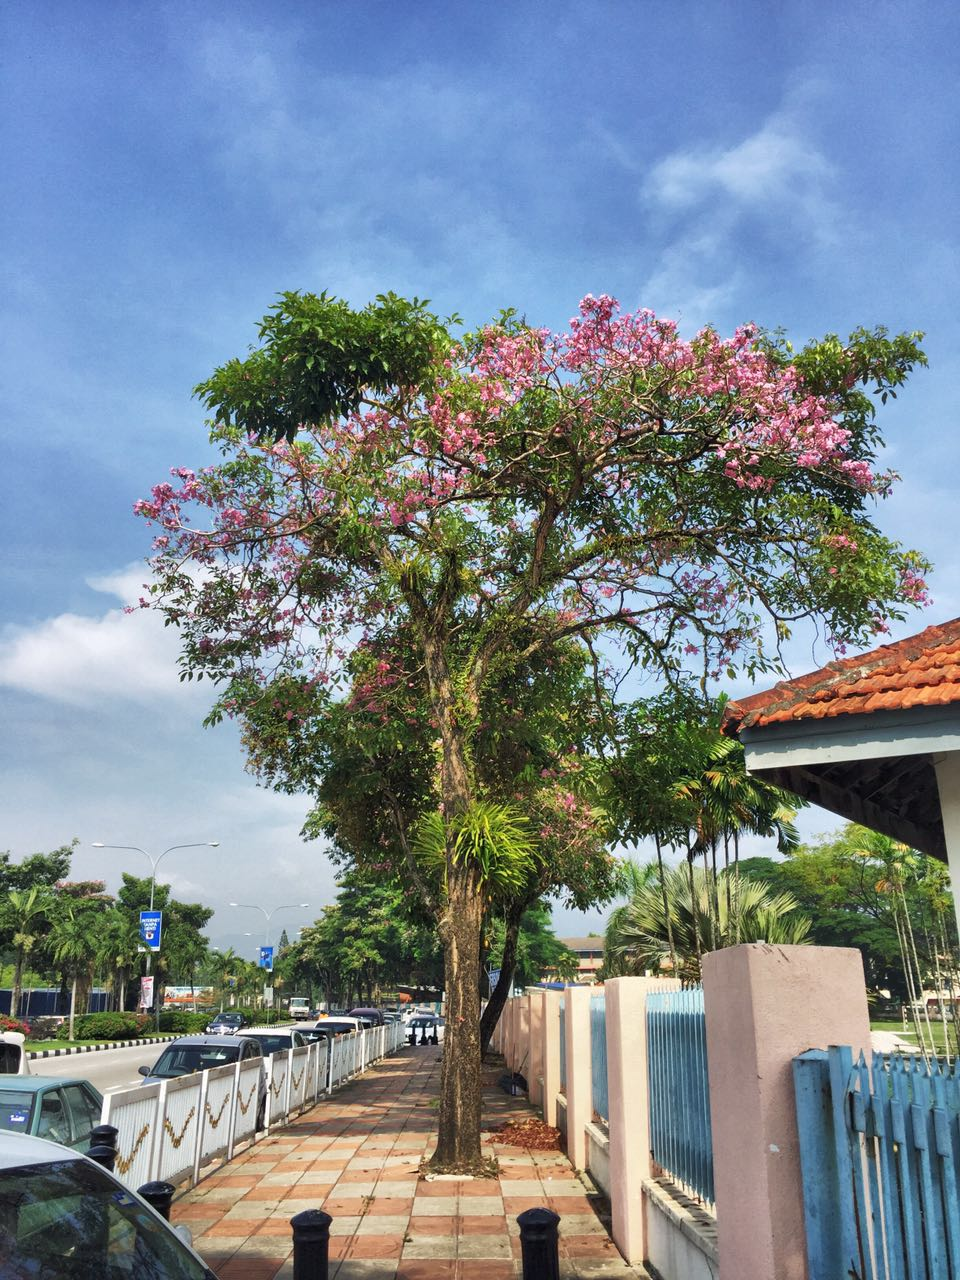 3. Tecoma trees along Jalan Hospital, Ipoh